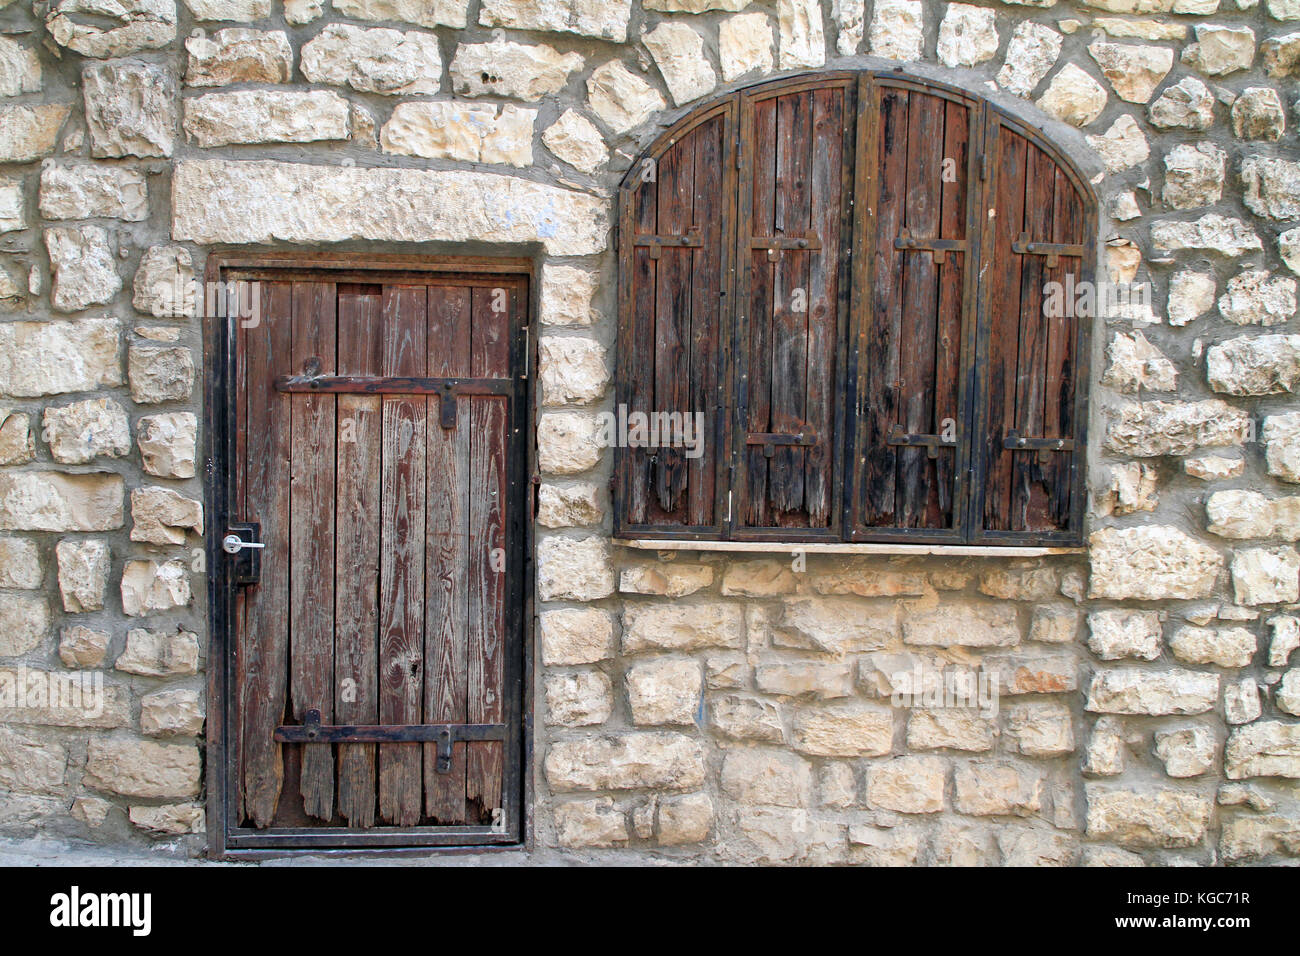 Wooden Door Blinds Old Wooden Door And Window Blinds In Israel Stock Photo 164996771